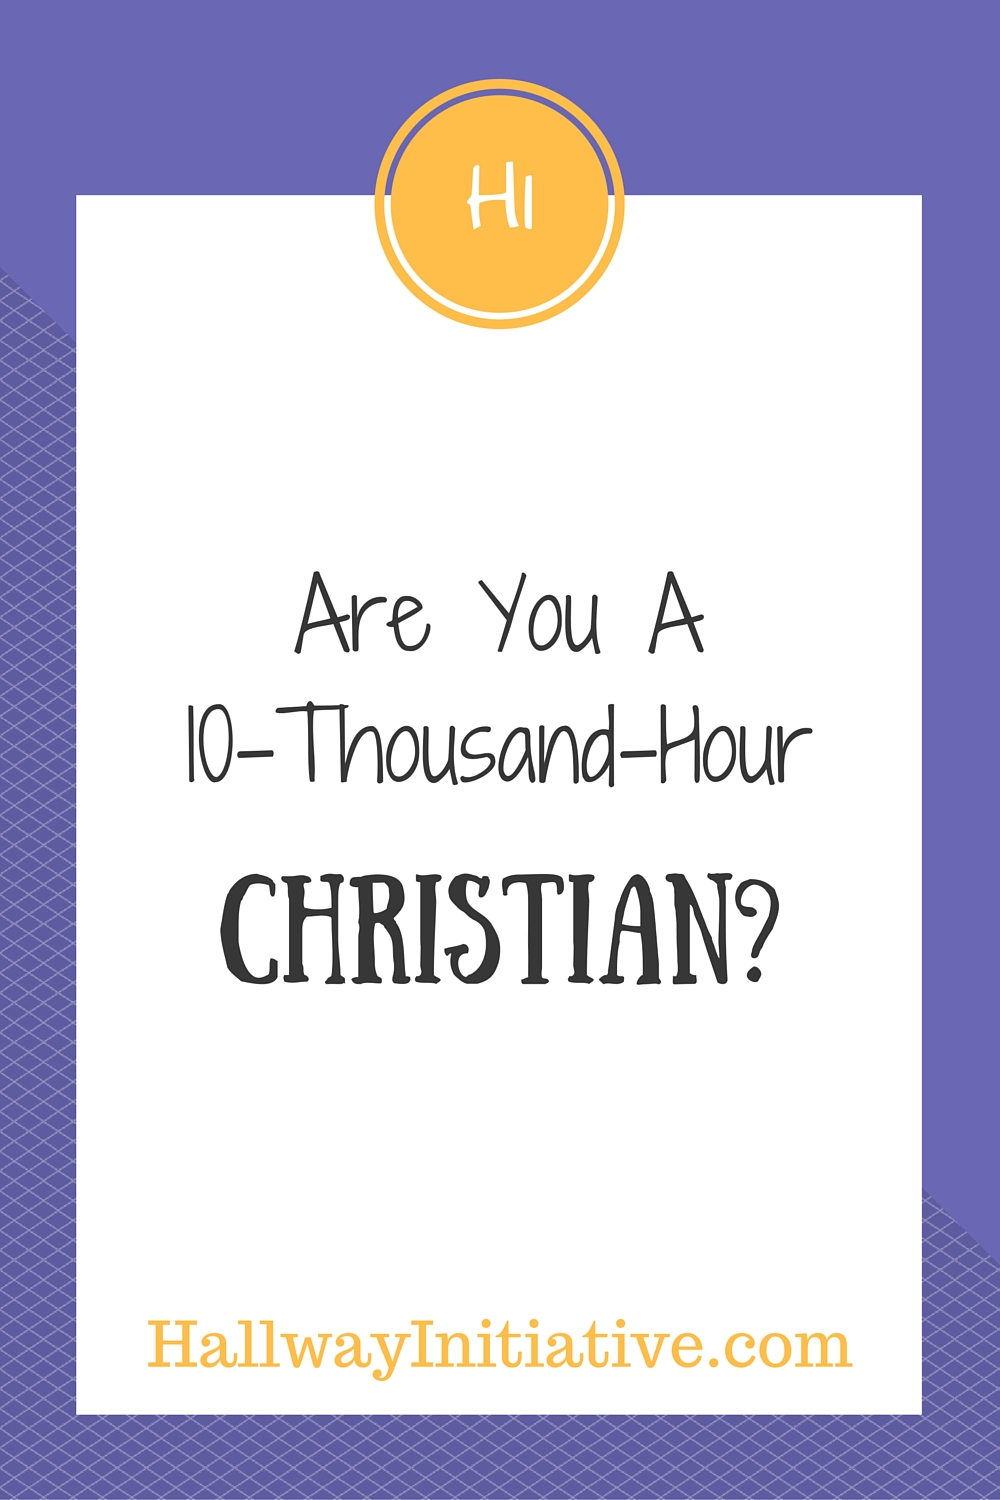 Are you a 10-thousand-hour Christian?